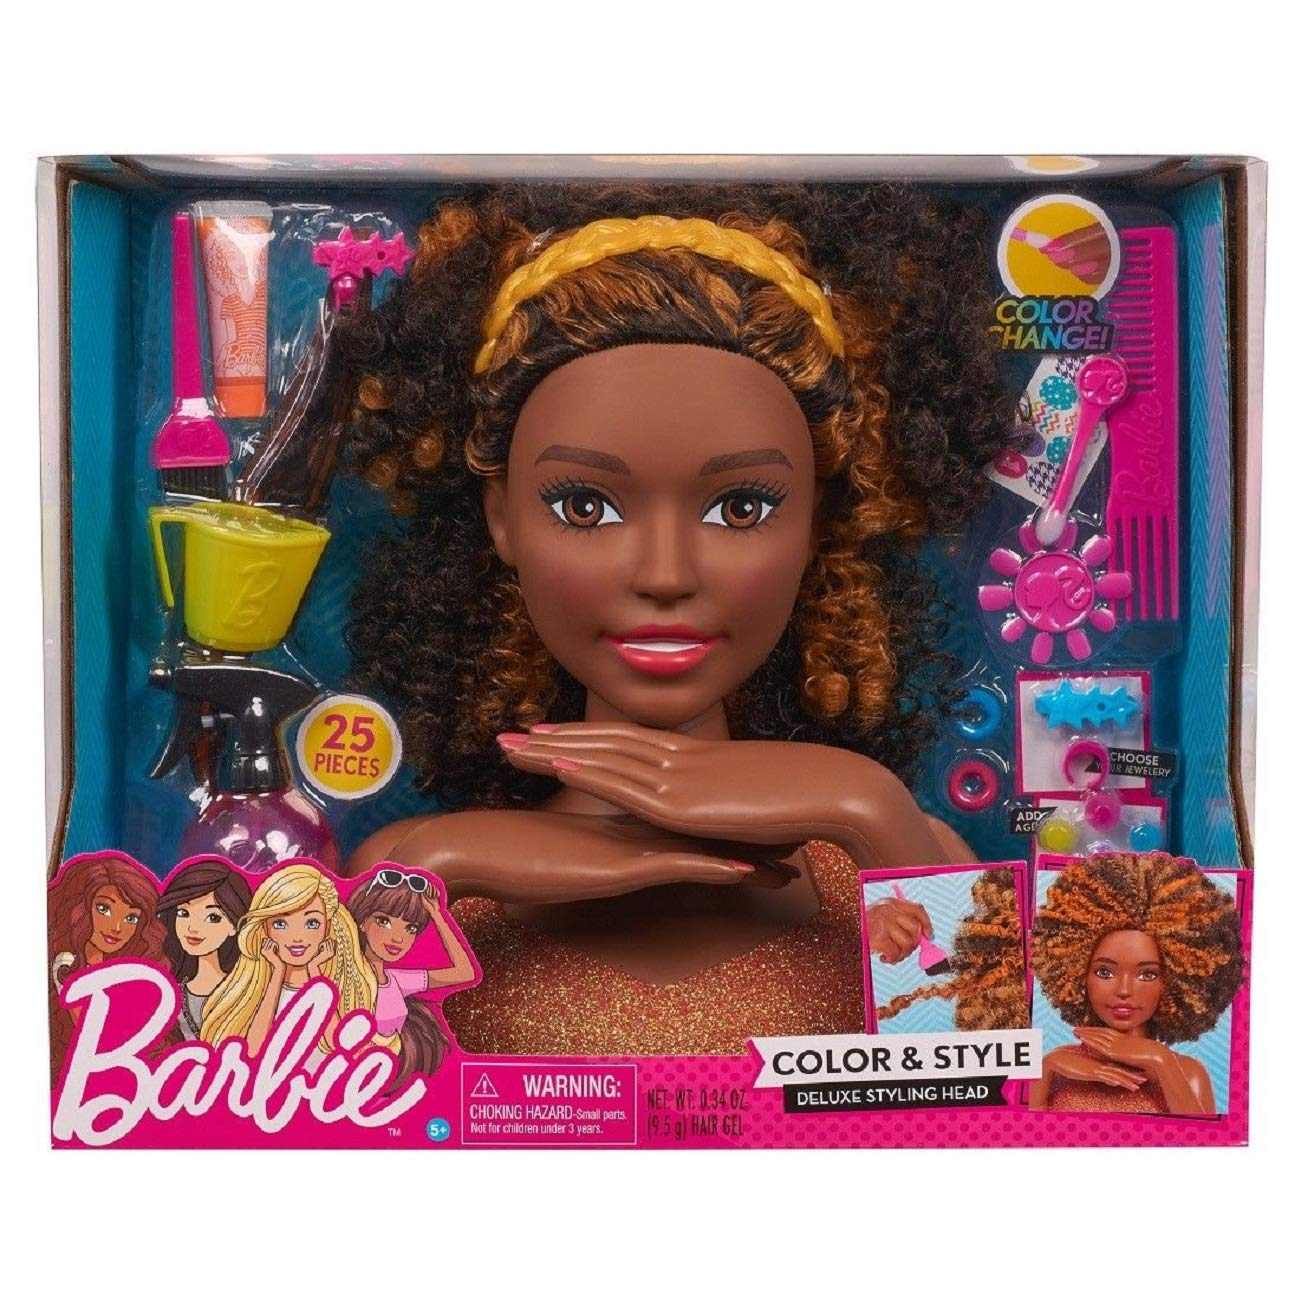 Barbie Deluxe Styling Head Color and Style Black Curly Hair